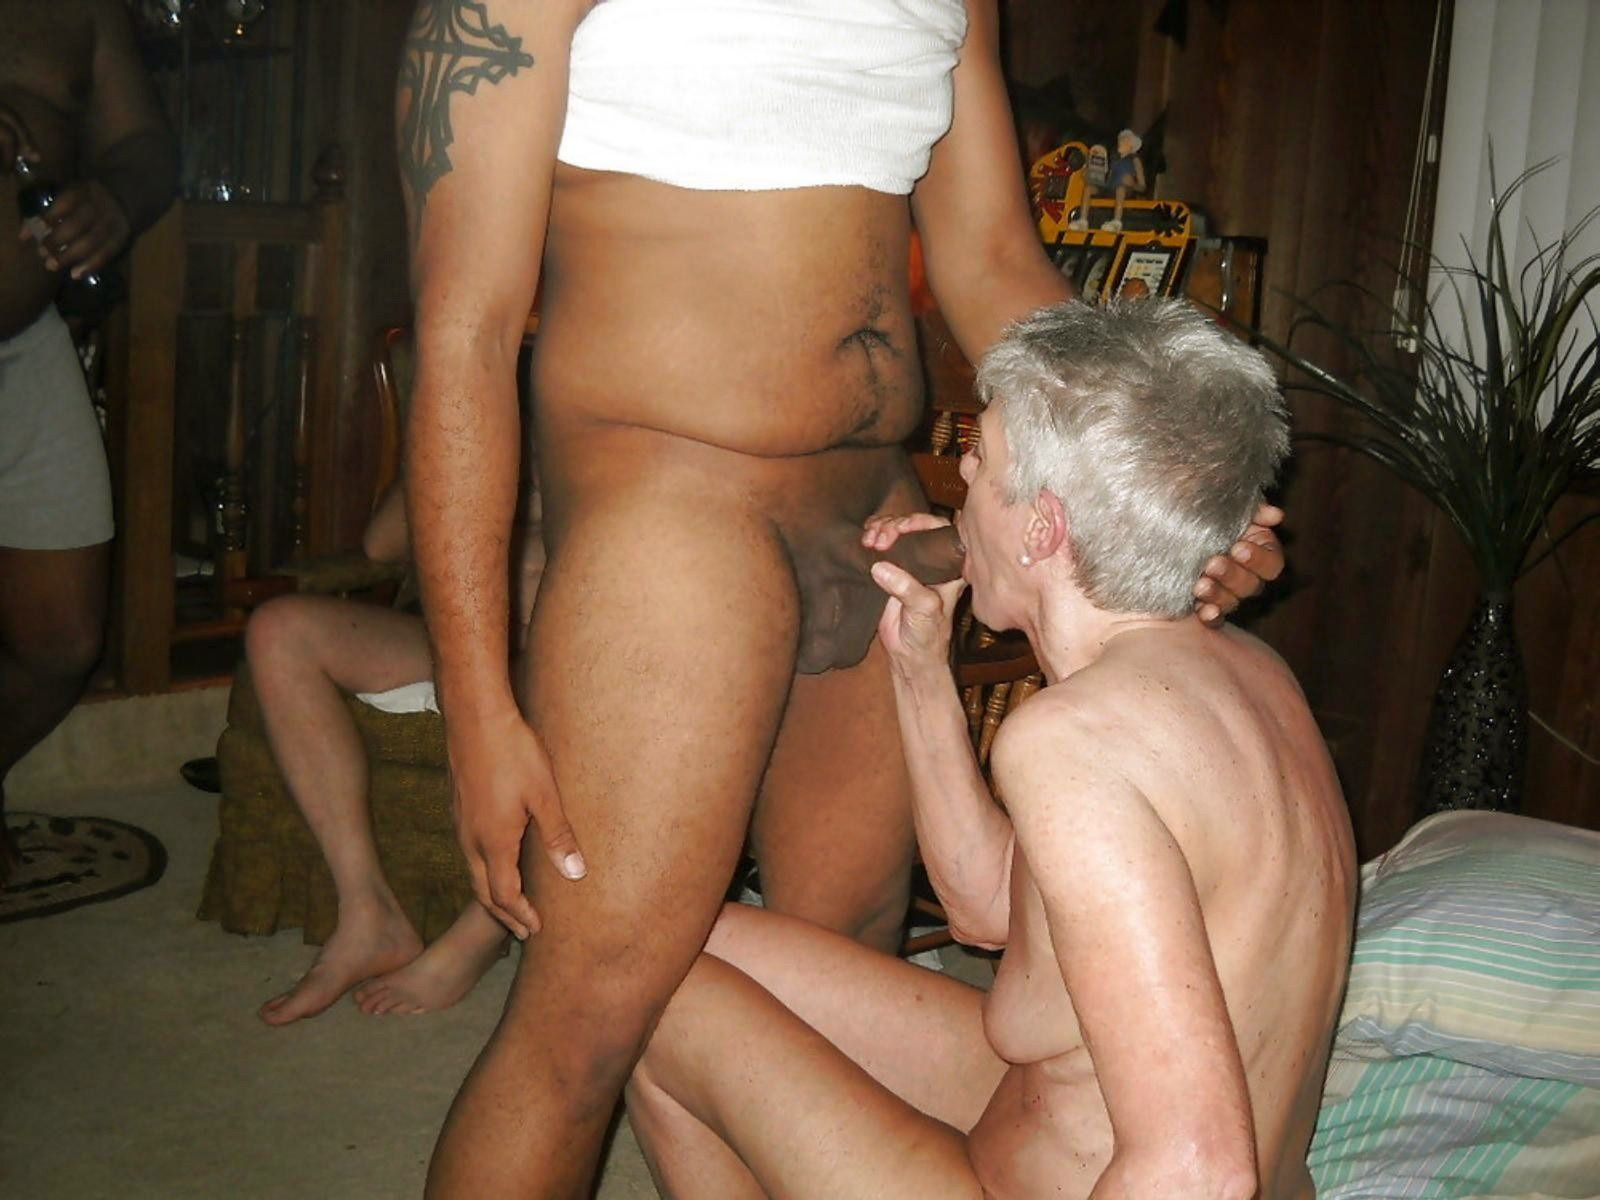 XXX Cuckold and Interracial Sex